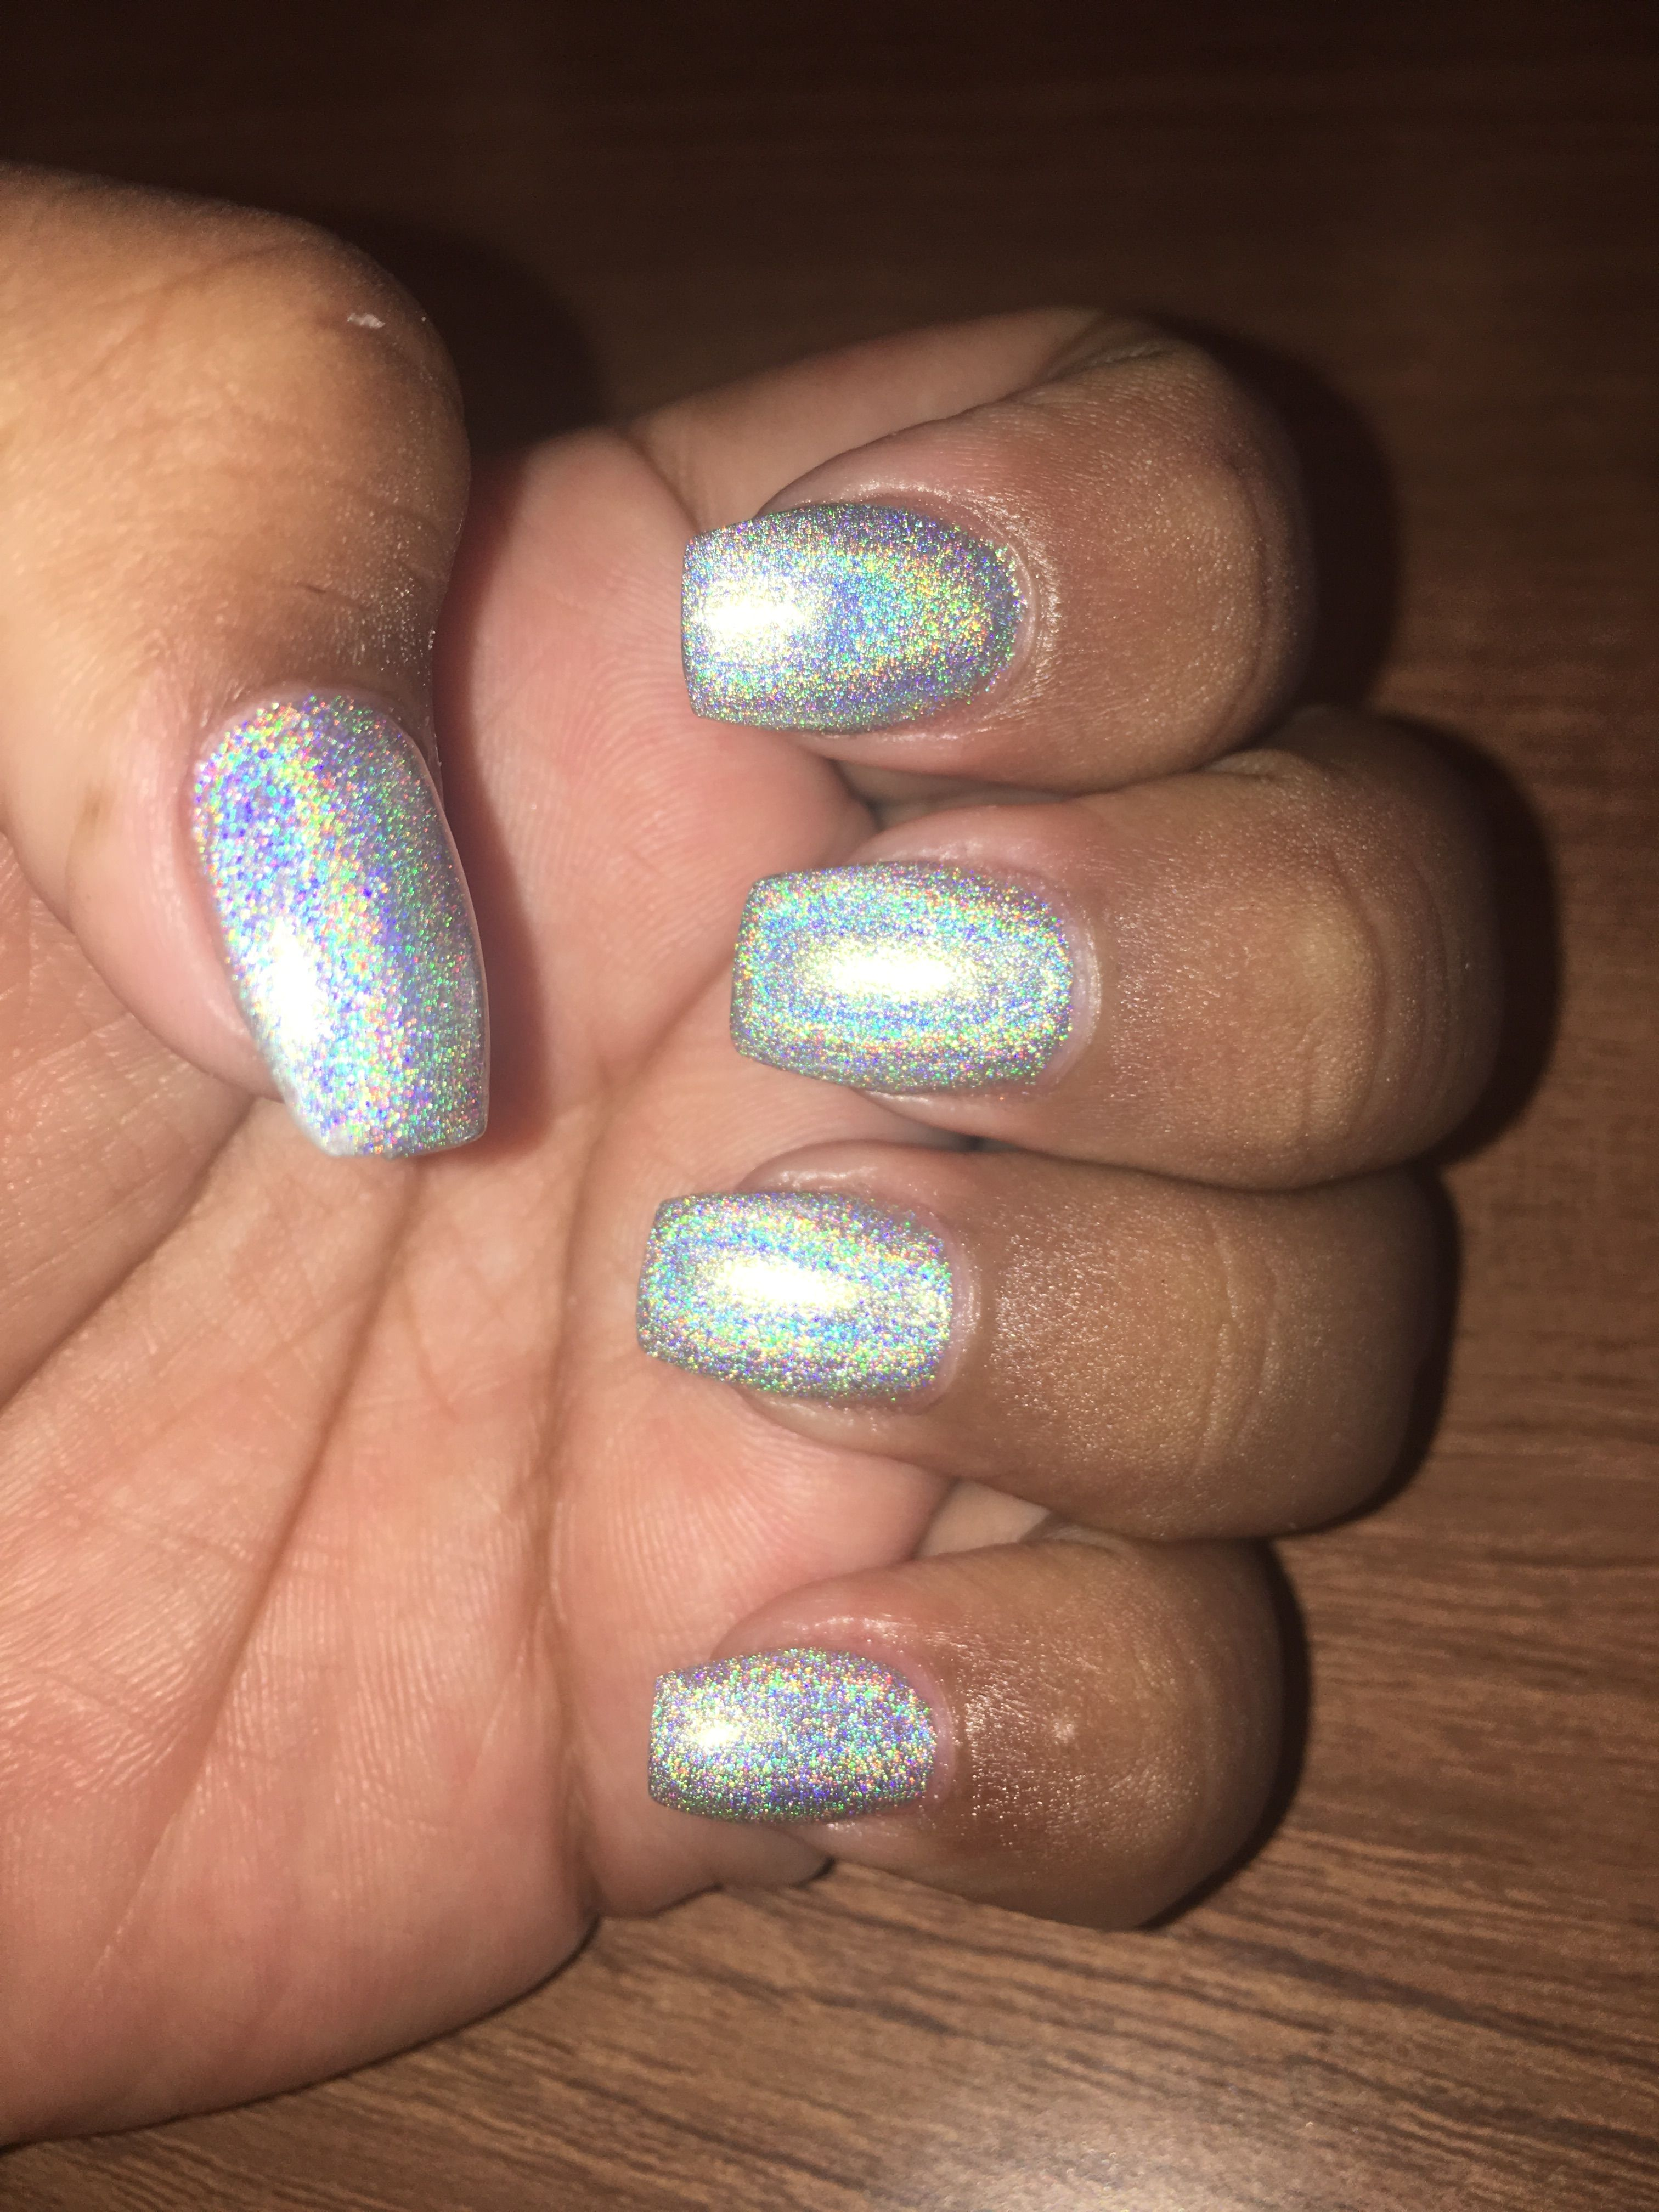 Pin By Deanna Pavlov On Tattoos: Holographic Nails, Nails, Beauty